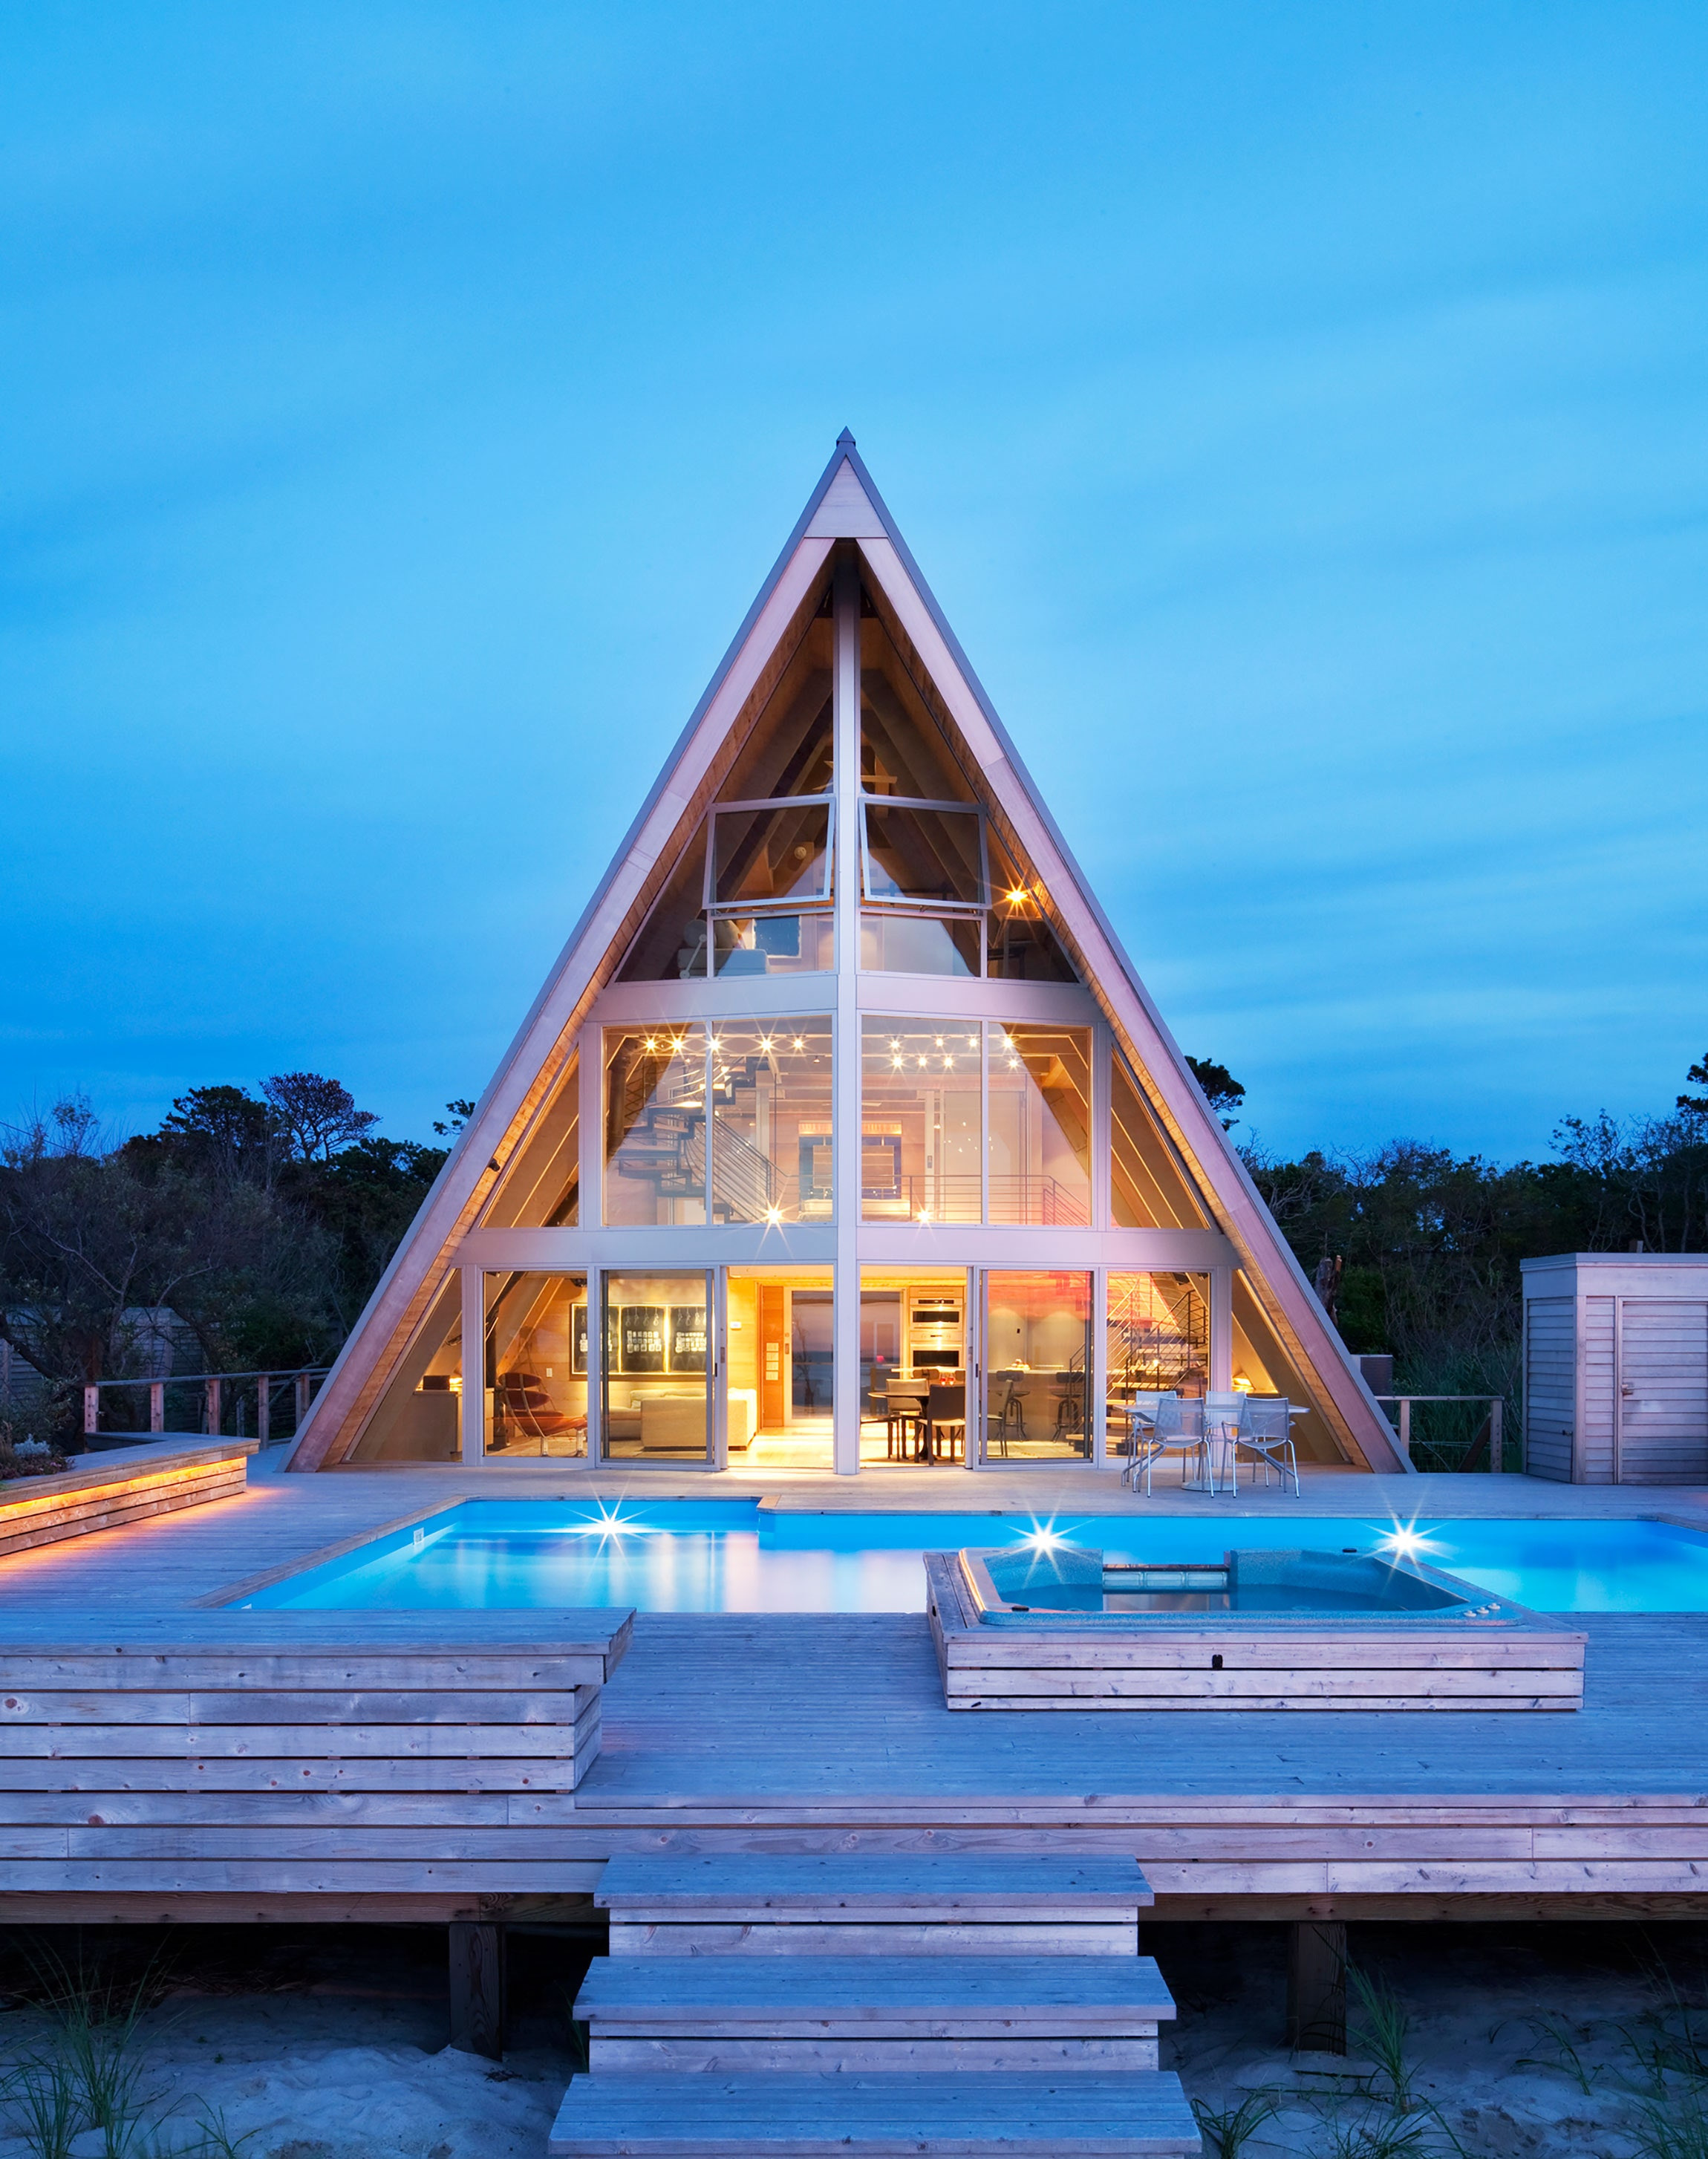 Pictures Of the Coolest Houses In the World Elegant 7 Breathtaking Contemporary A Frame Homes